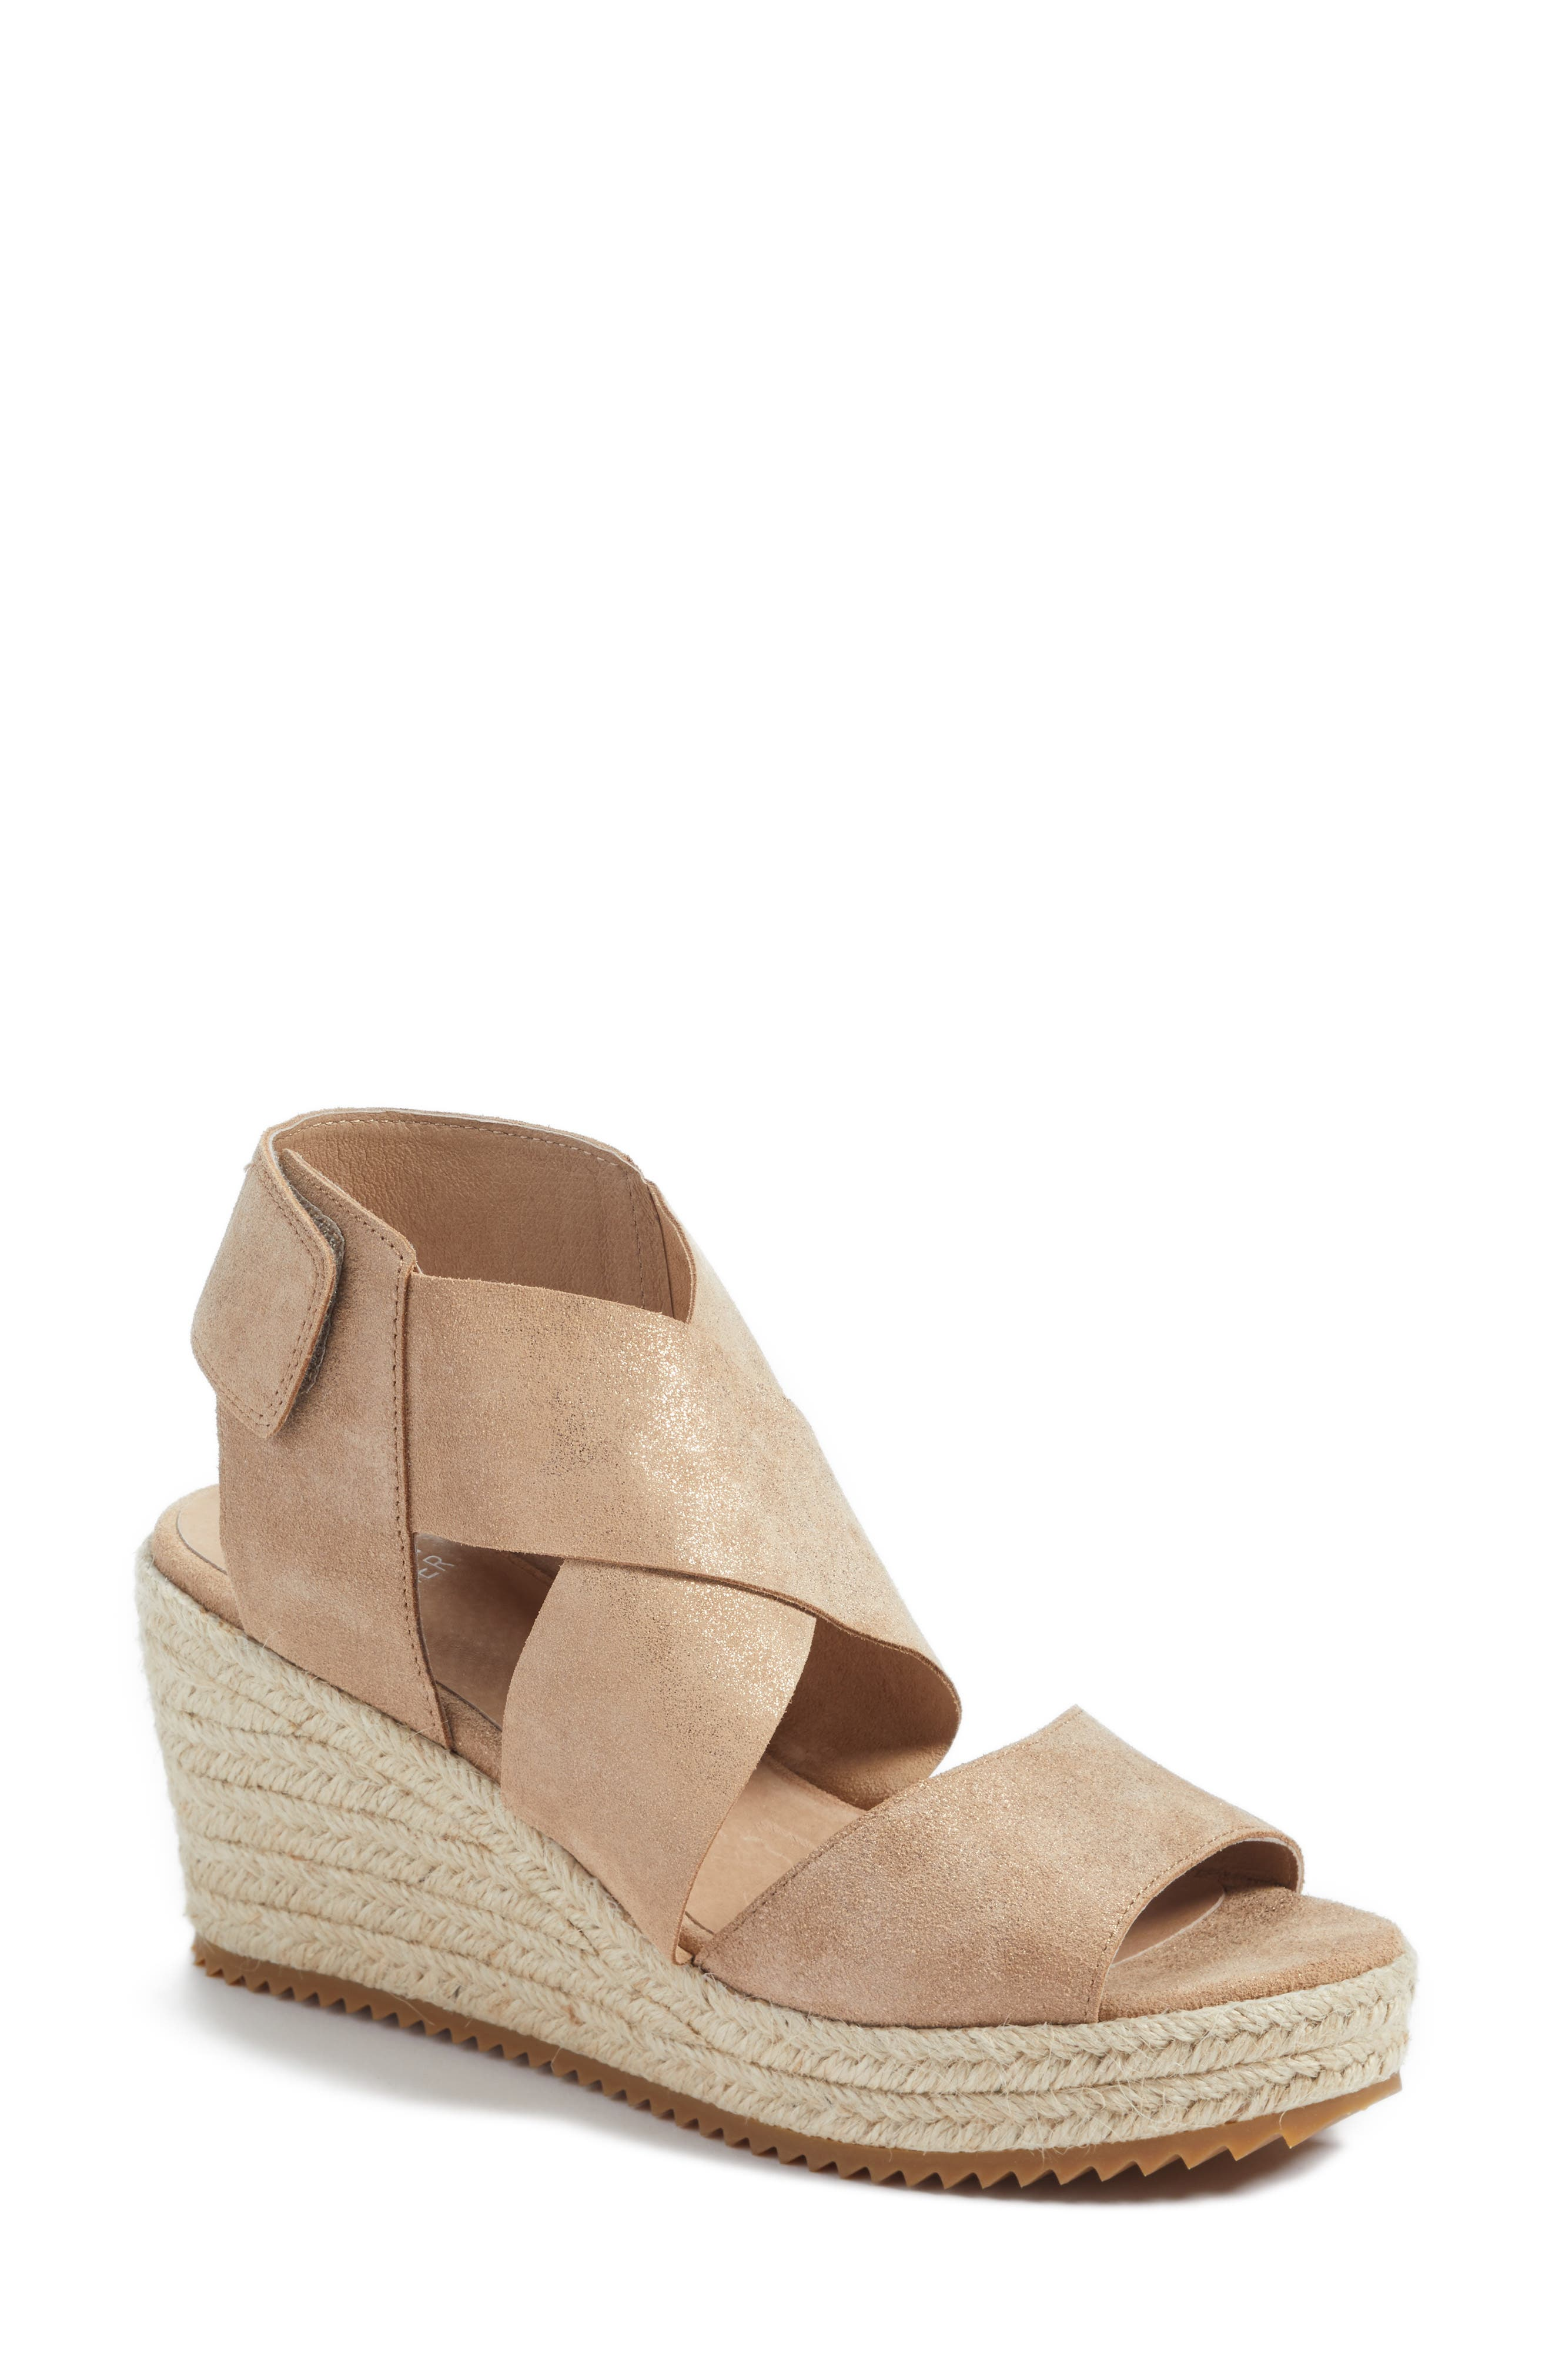 94b6e1369df Eileen Fisher  Willow  Espadrille Wedge Sandal